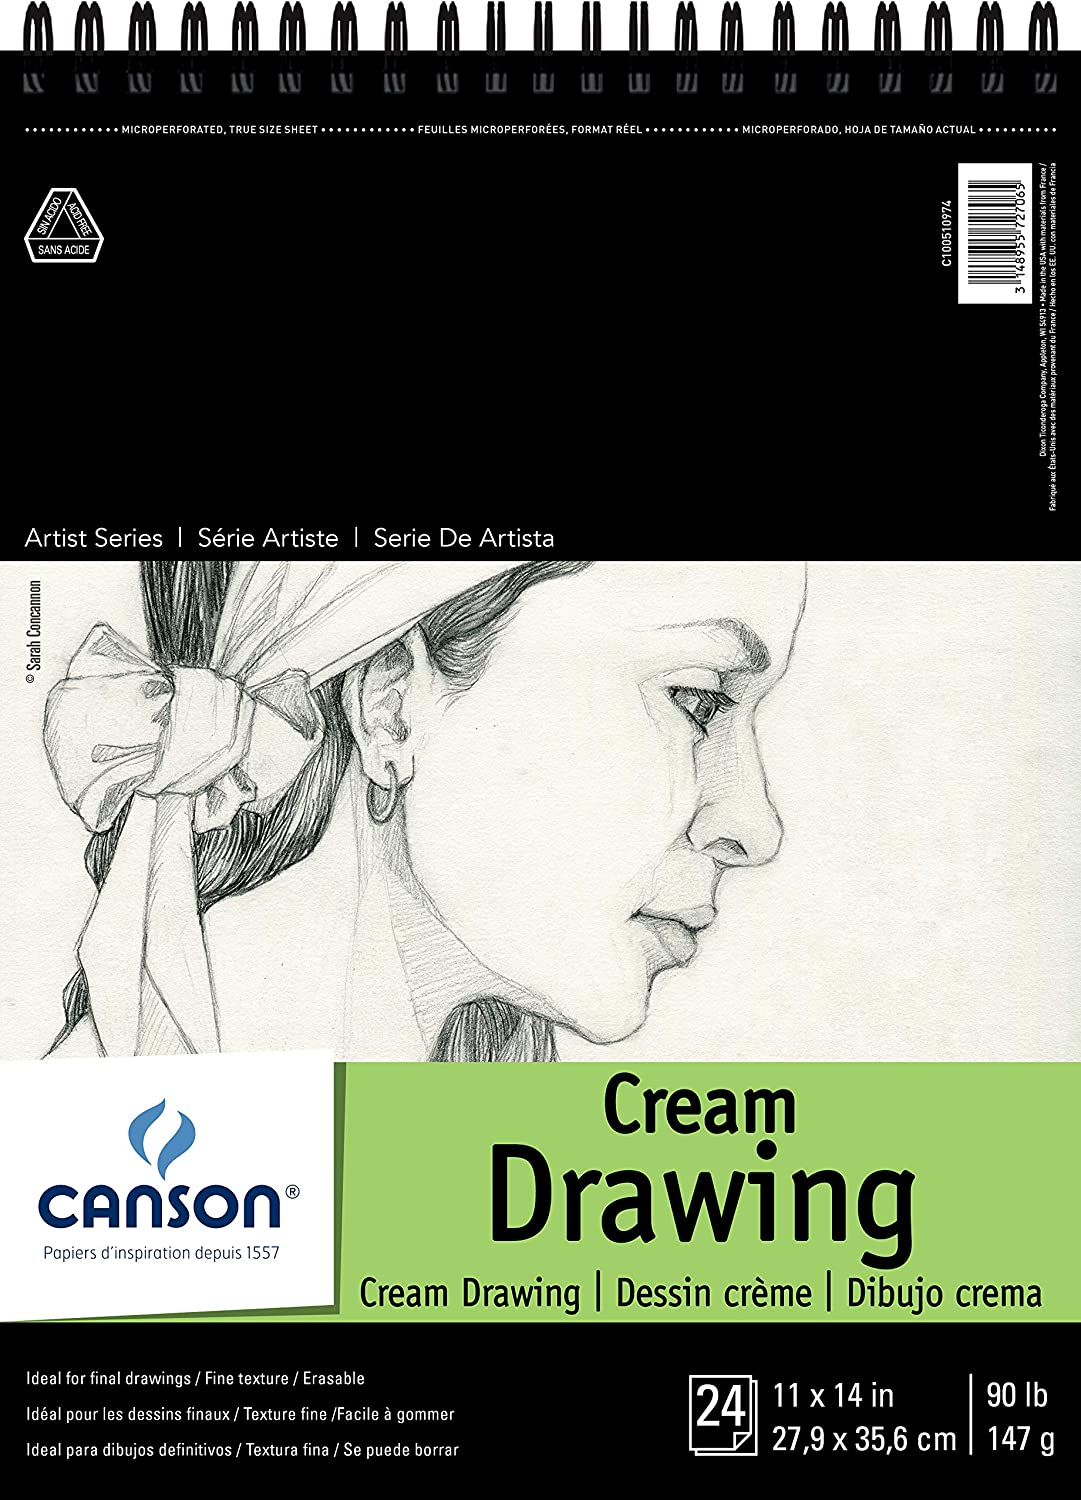 "Canson Artist Series Cream Drawing Pad 11"" x 14"", Top Wire Bound, 24 Sheets (100510974)"